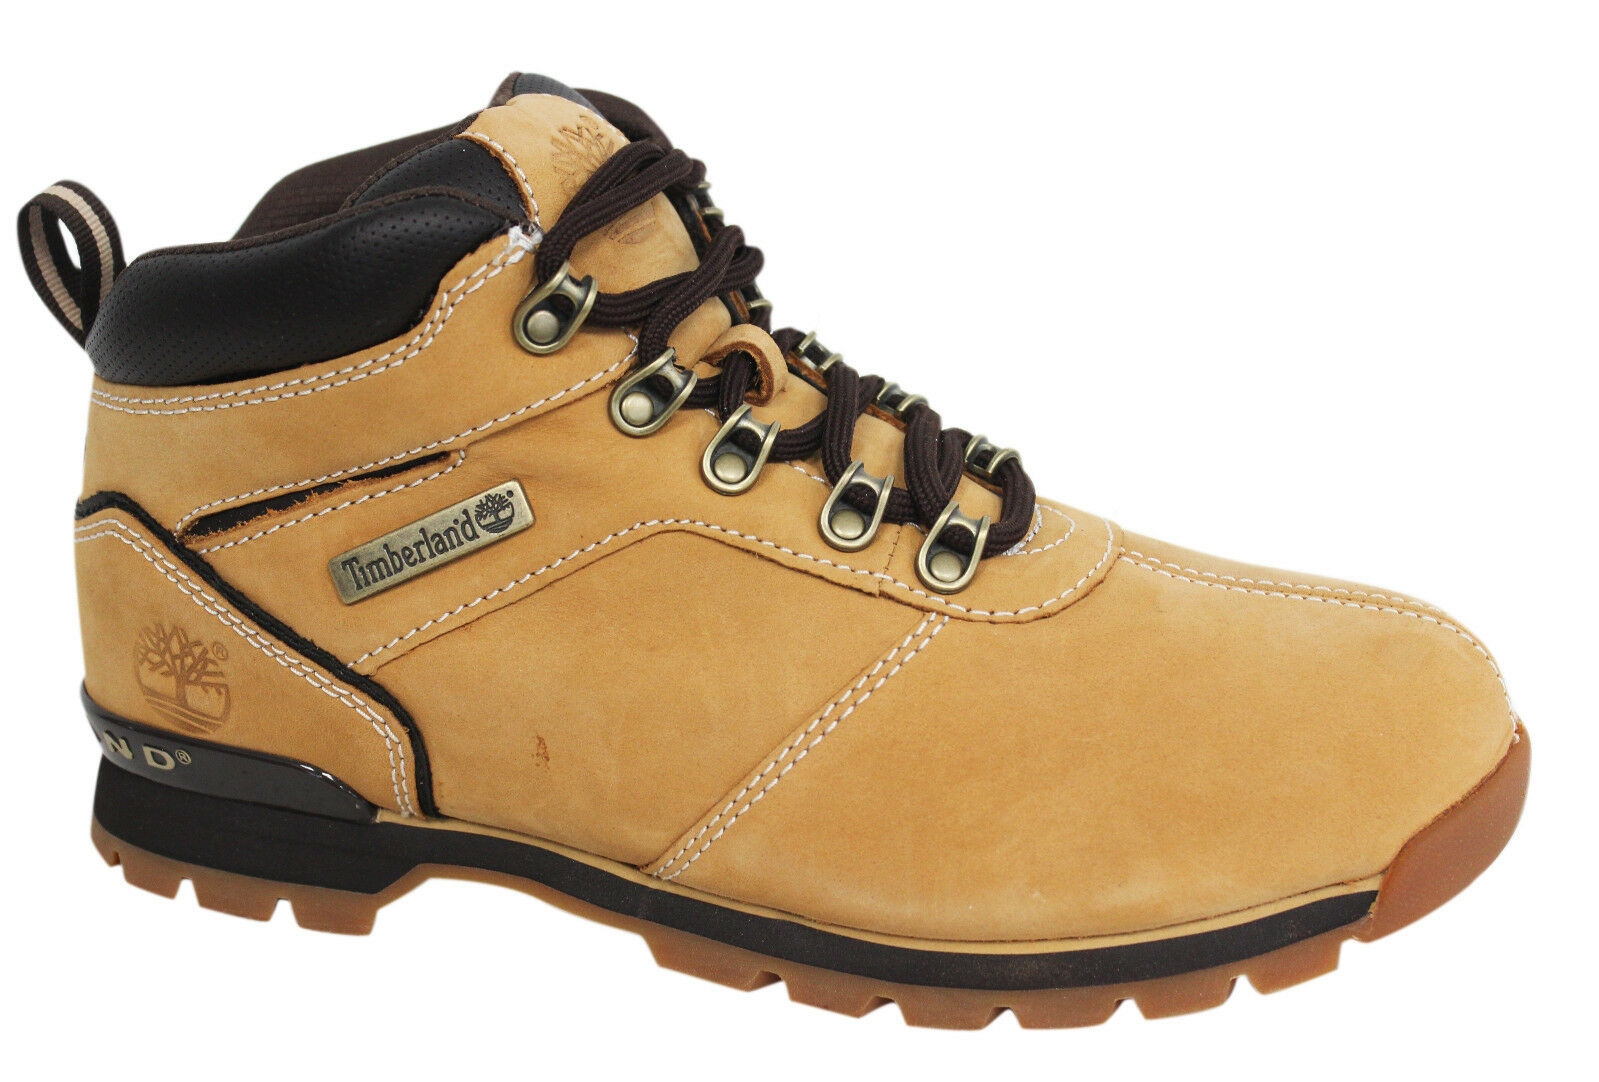 5a5a8944d231 Details about Timberland Splitrock 2 Hiker Nubuck Leather Wheat Mens Lace  Up Boots A11X4 D95